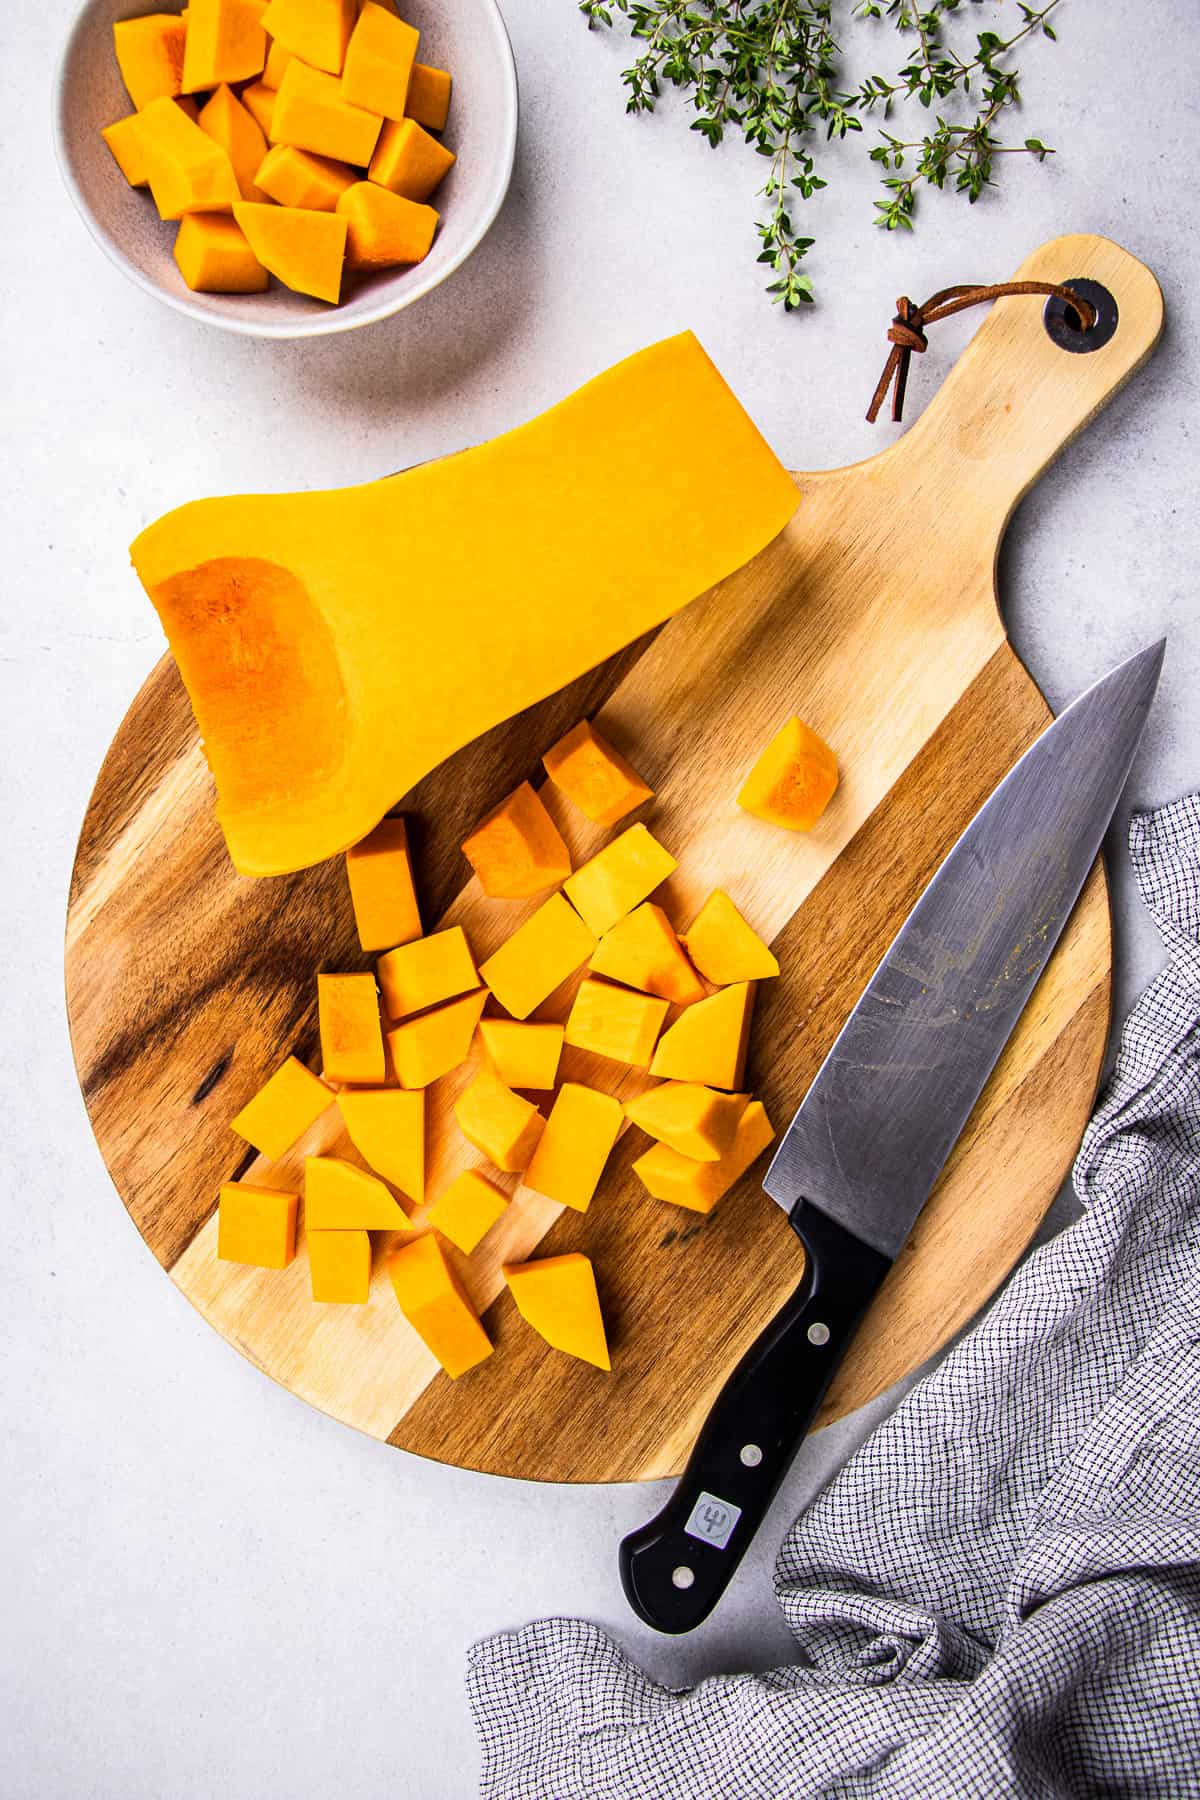 A half of butternut squash and some cubed squash with a knife on a round cutting board.